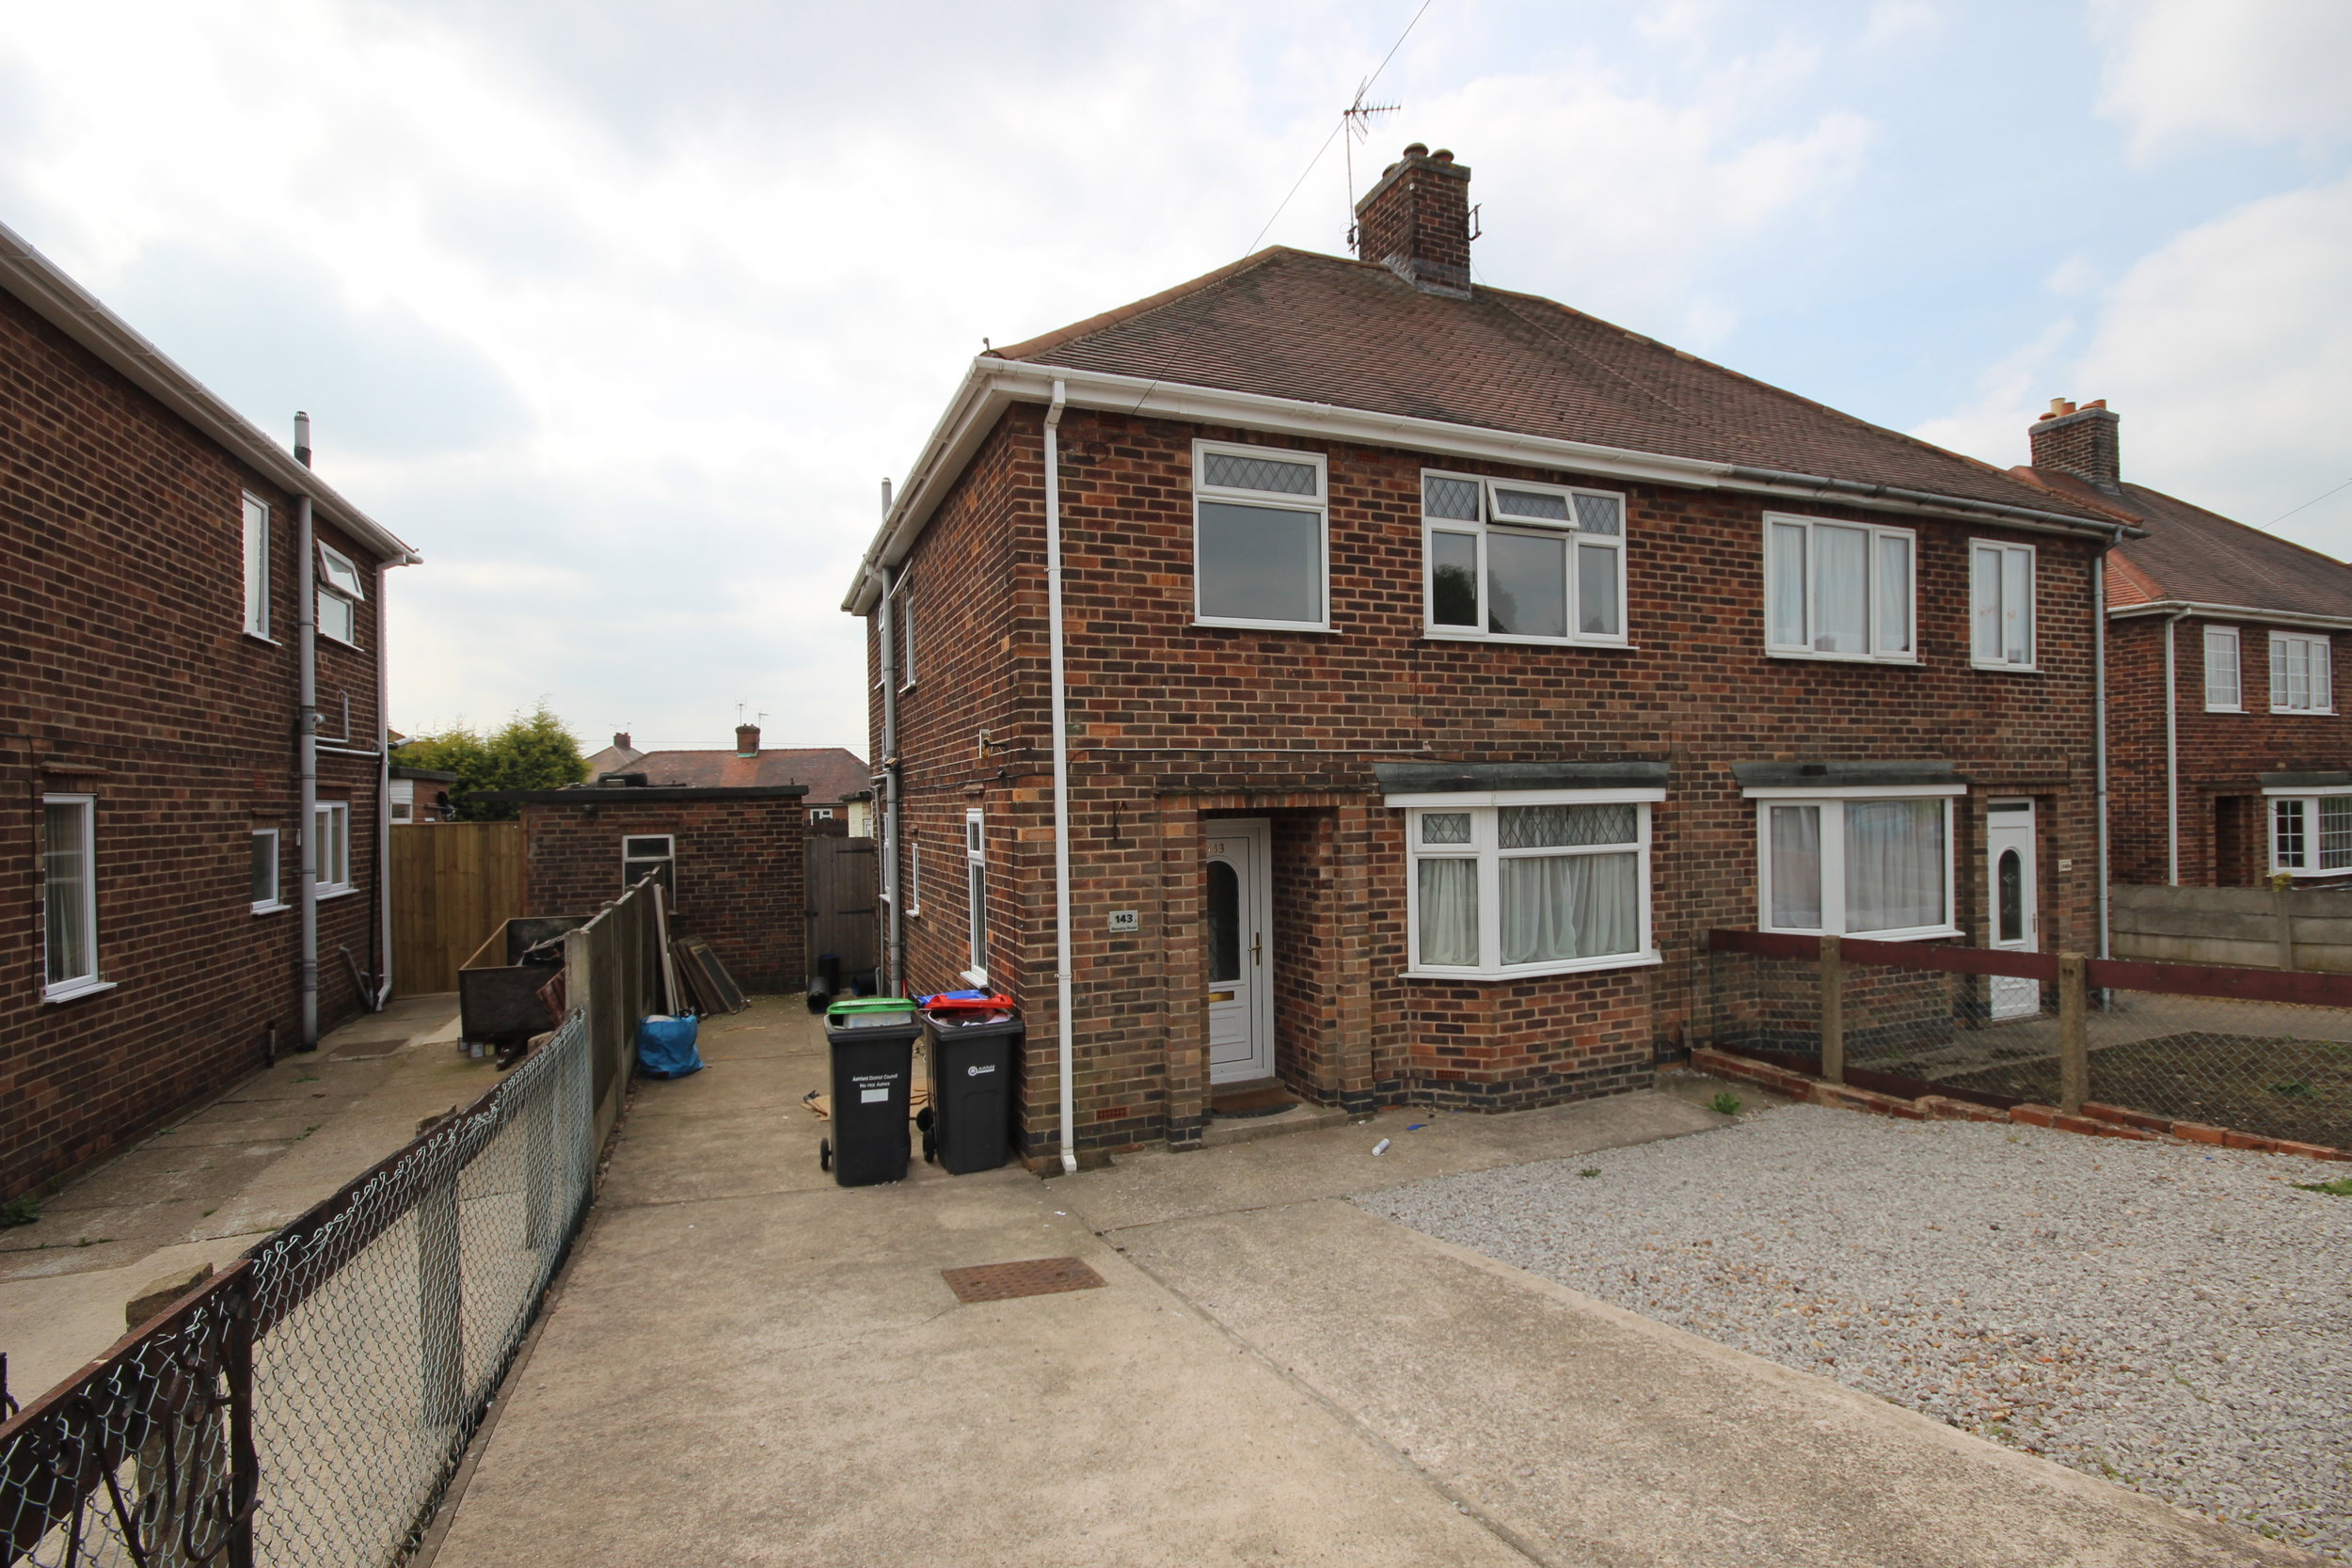 IT'S GONE! £575pcm Skegby Road, Kirkby in Ashfield, Notts, NG17 9FZ3 Bedroom semi - A lovely spacious three bedroom property with driveway parking and a large enclosed rear garden, close to parks and amenities!